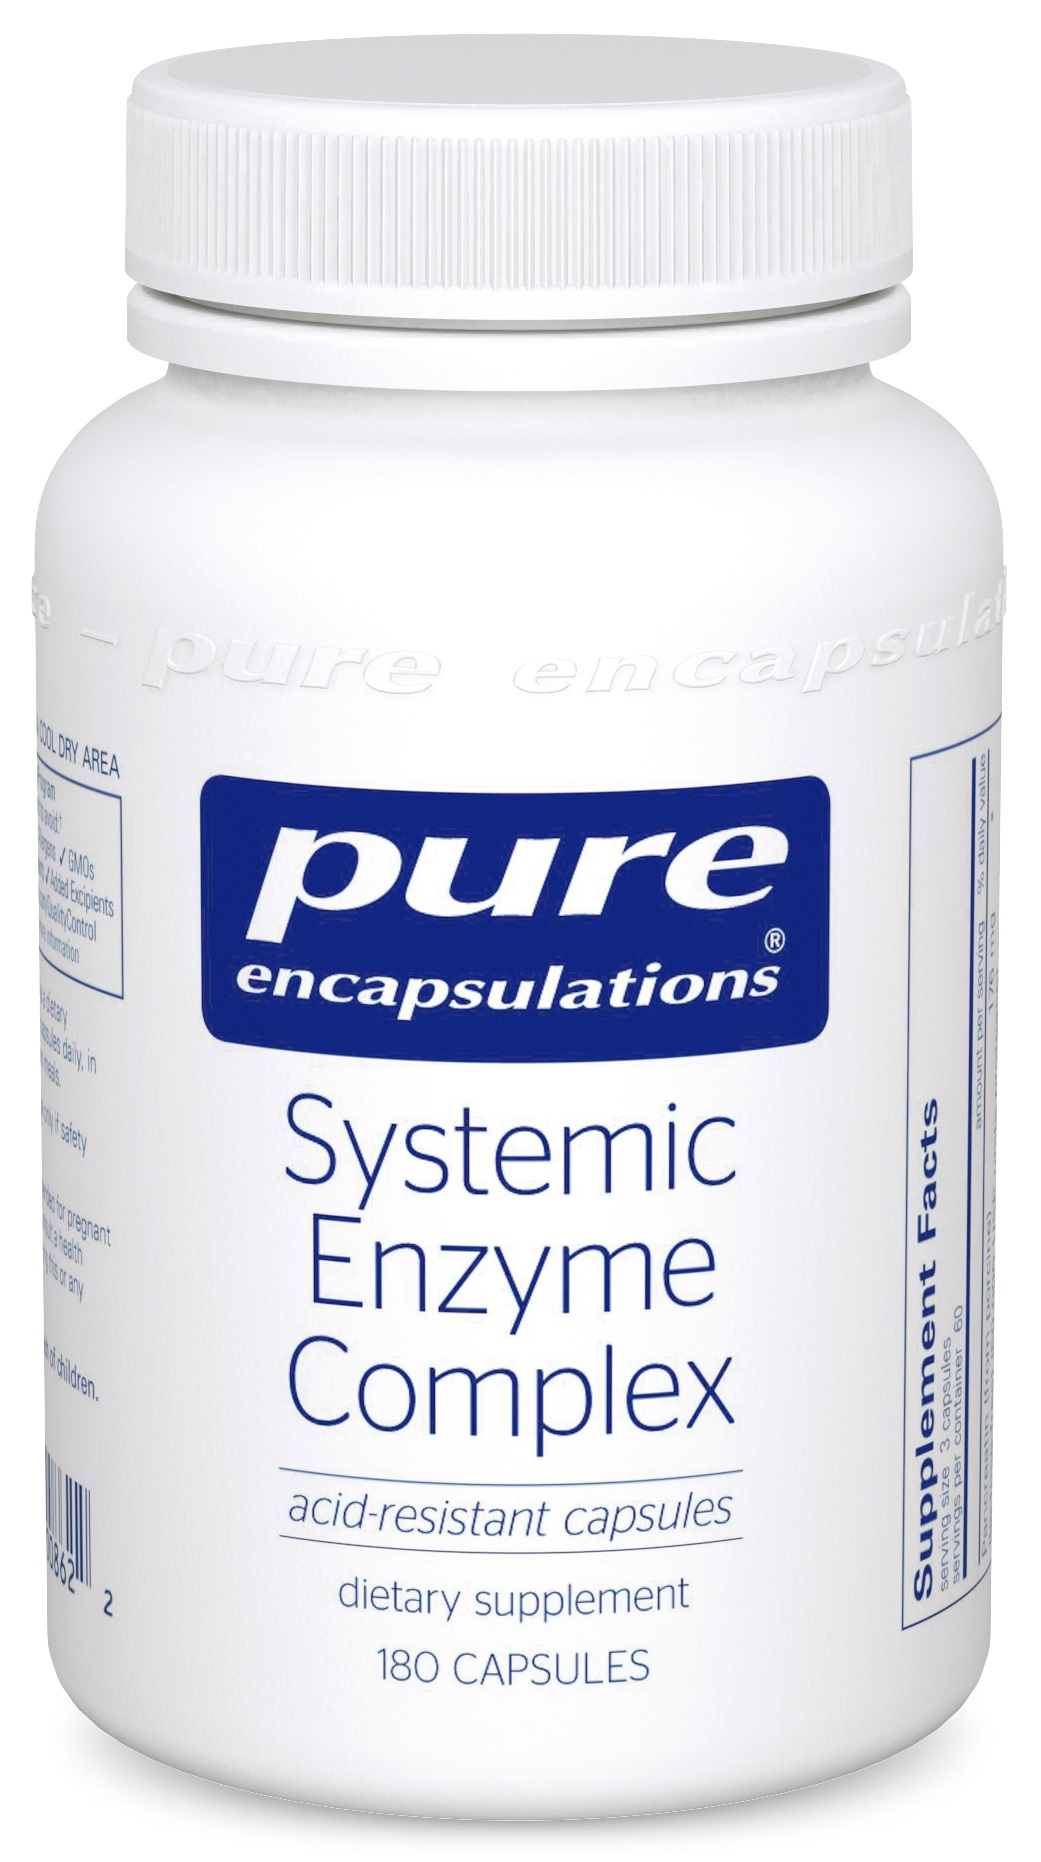 Pure Encapsulations Systemic Enzyme Complex 180's